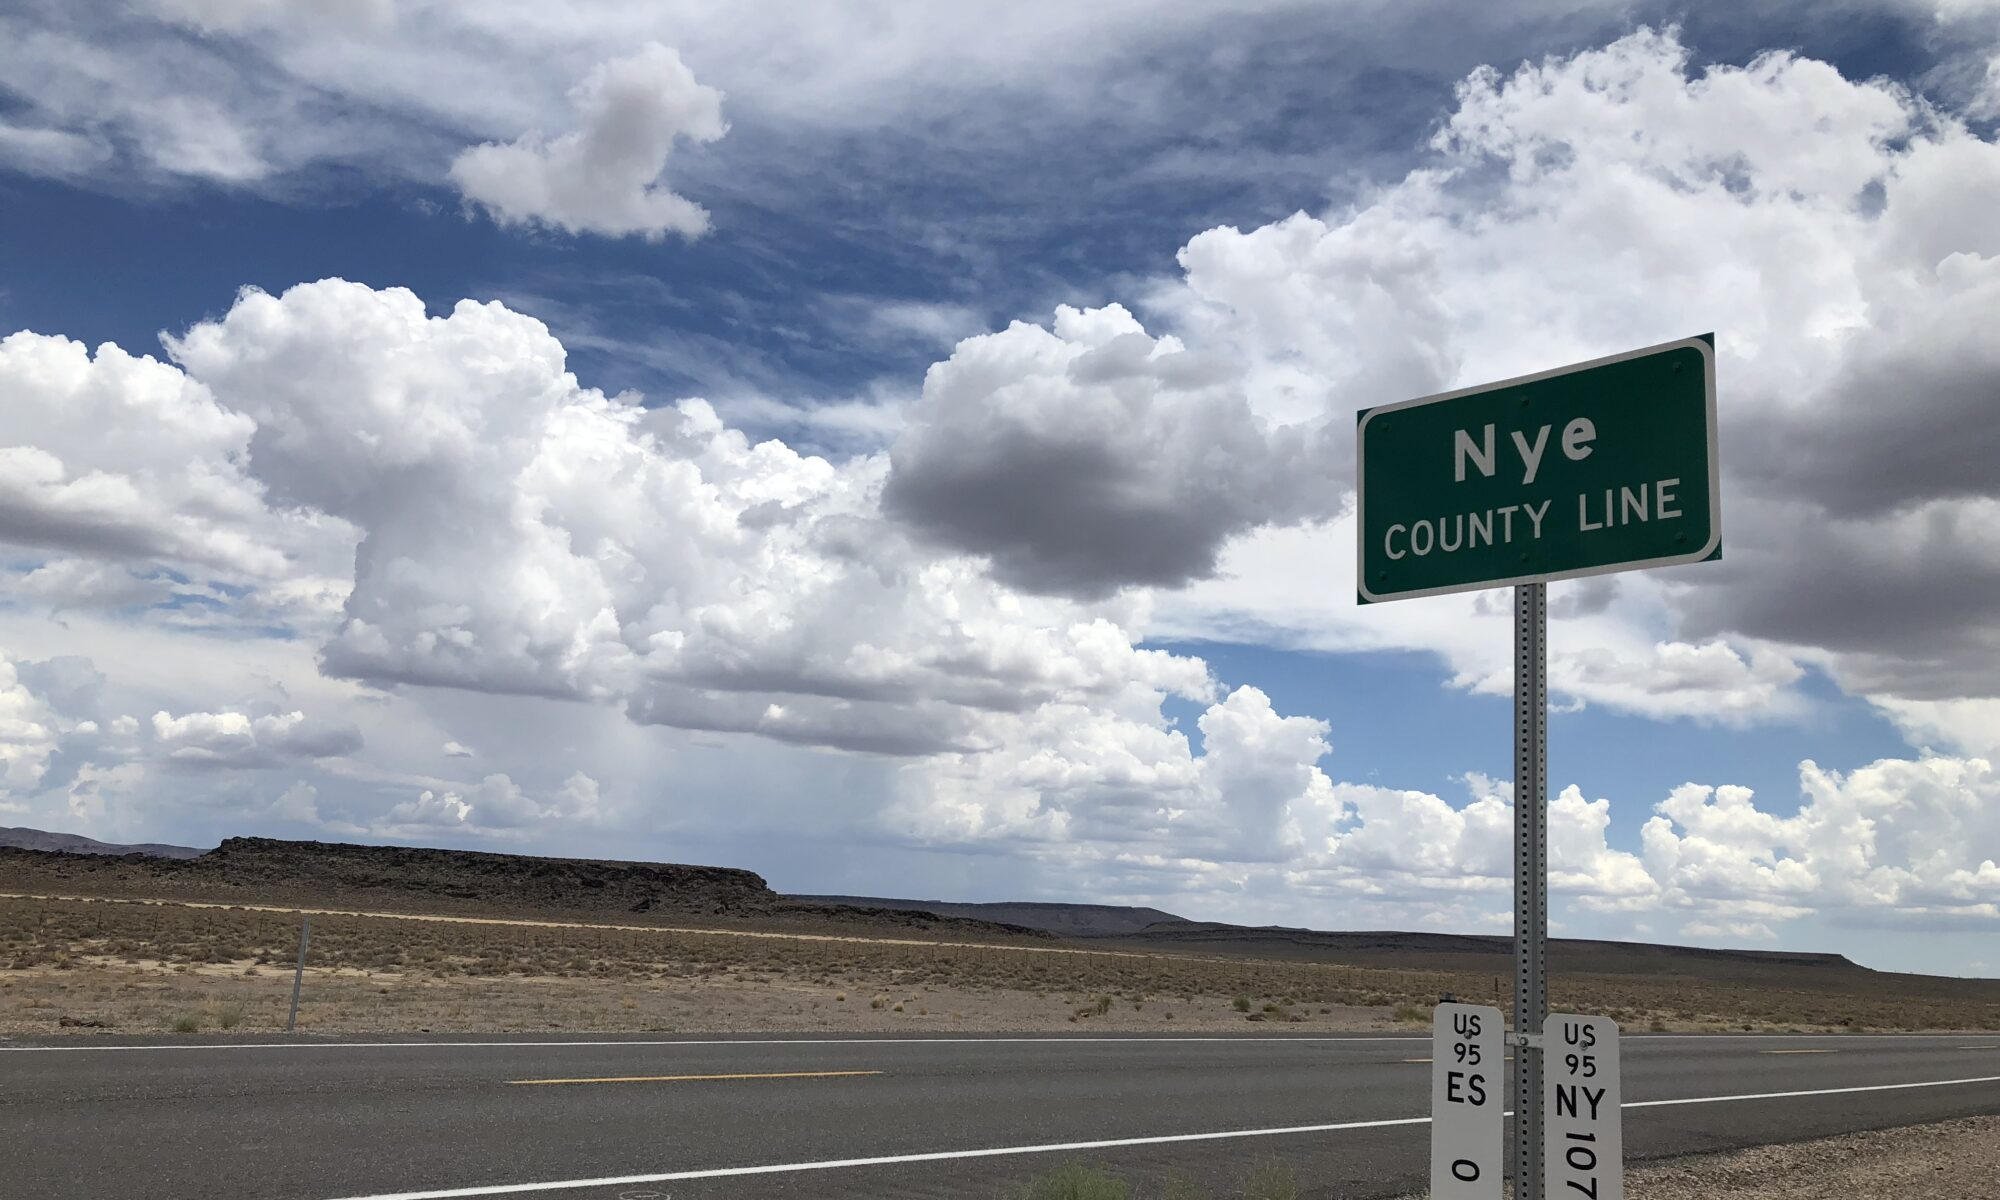 A photo of the sign next to the road entering Nye County.